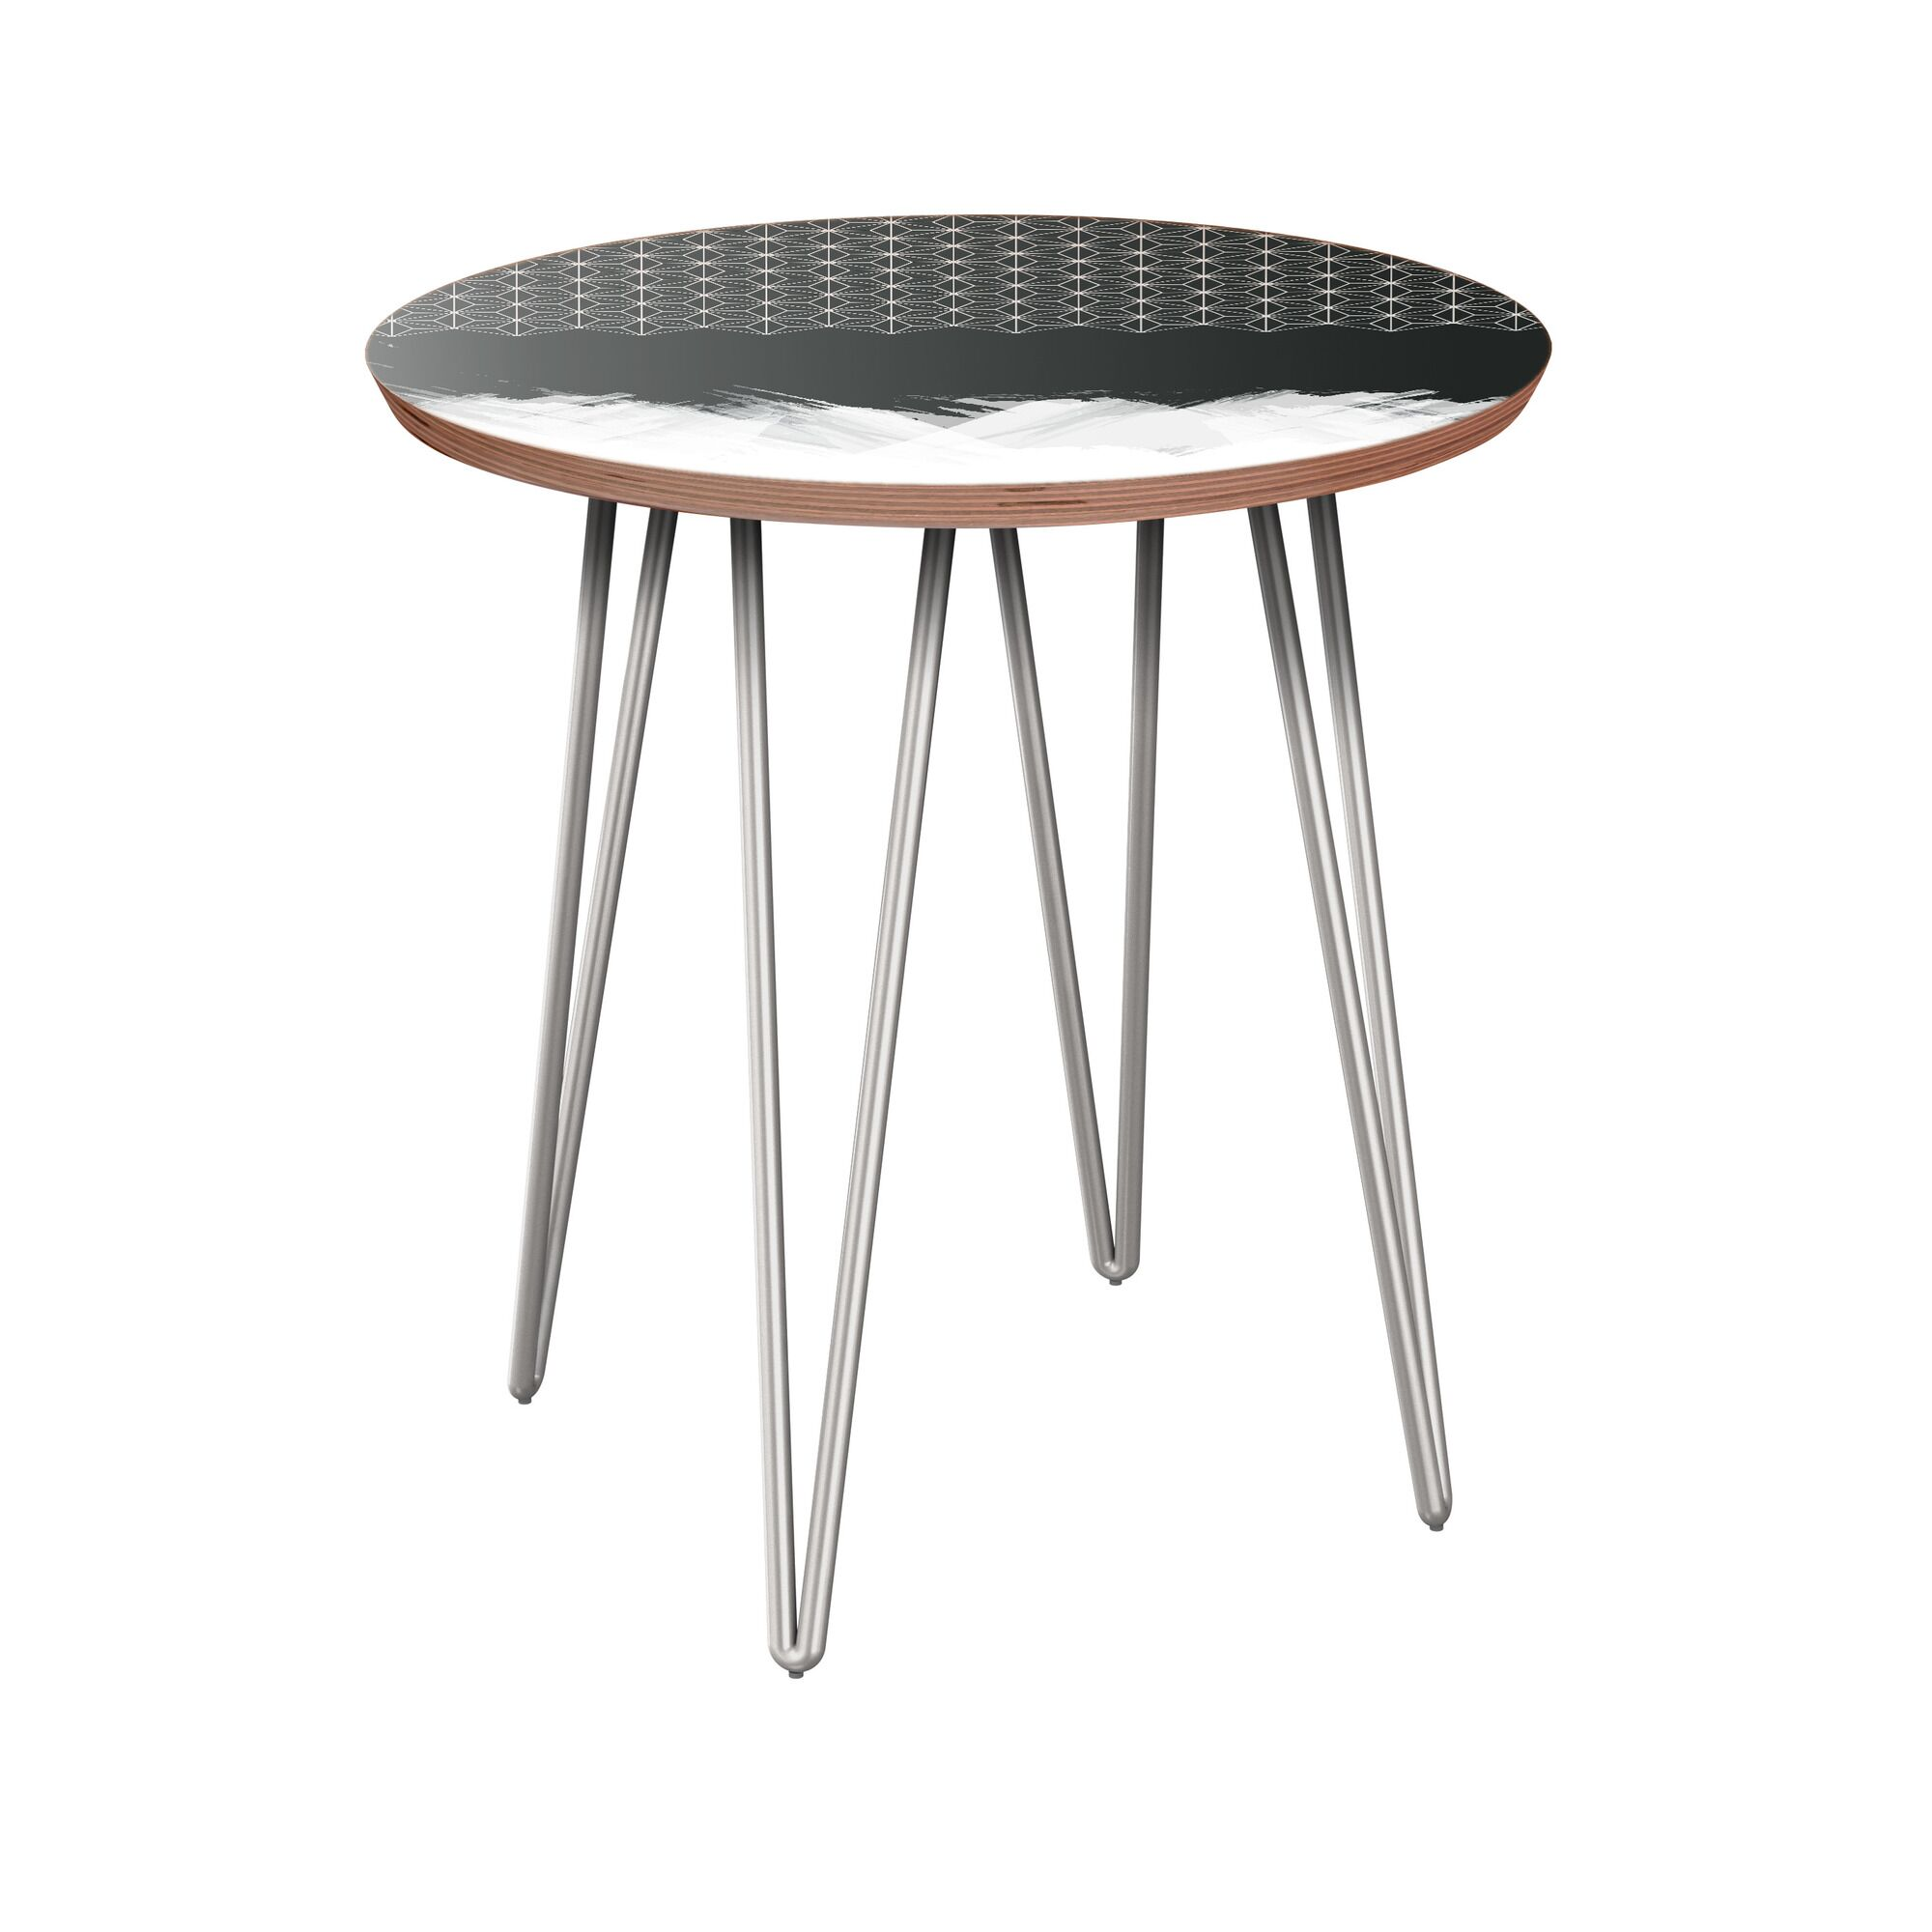 Etna End Table Table Base Color: Chrome, Table Top Color: Walnut